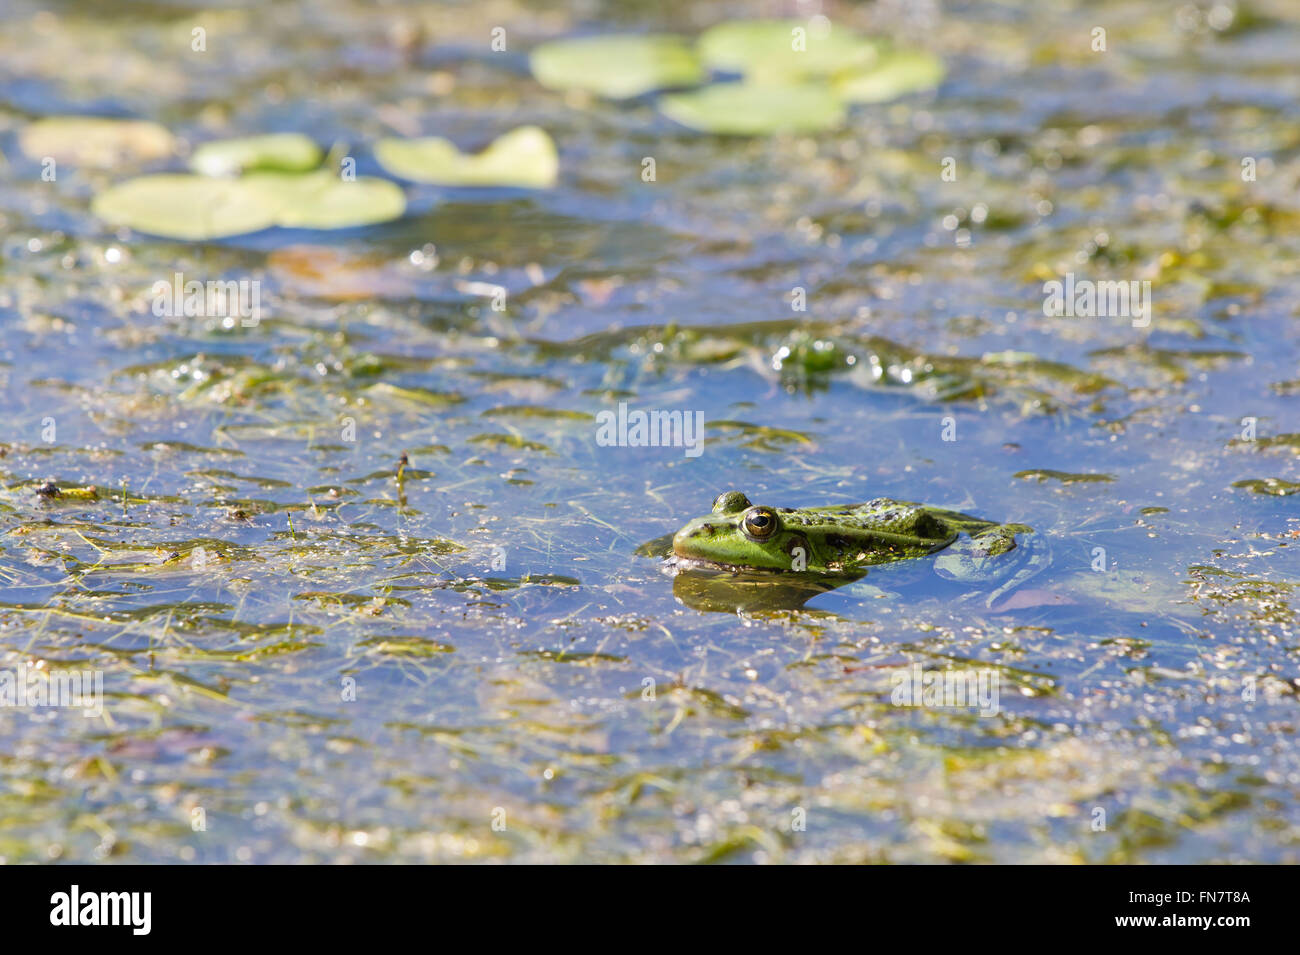 Edible frog, common water frog or green frog -  (Pelophylax esculentus or Pelophylax kl. esculentus) - Stock Image